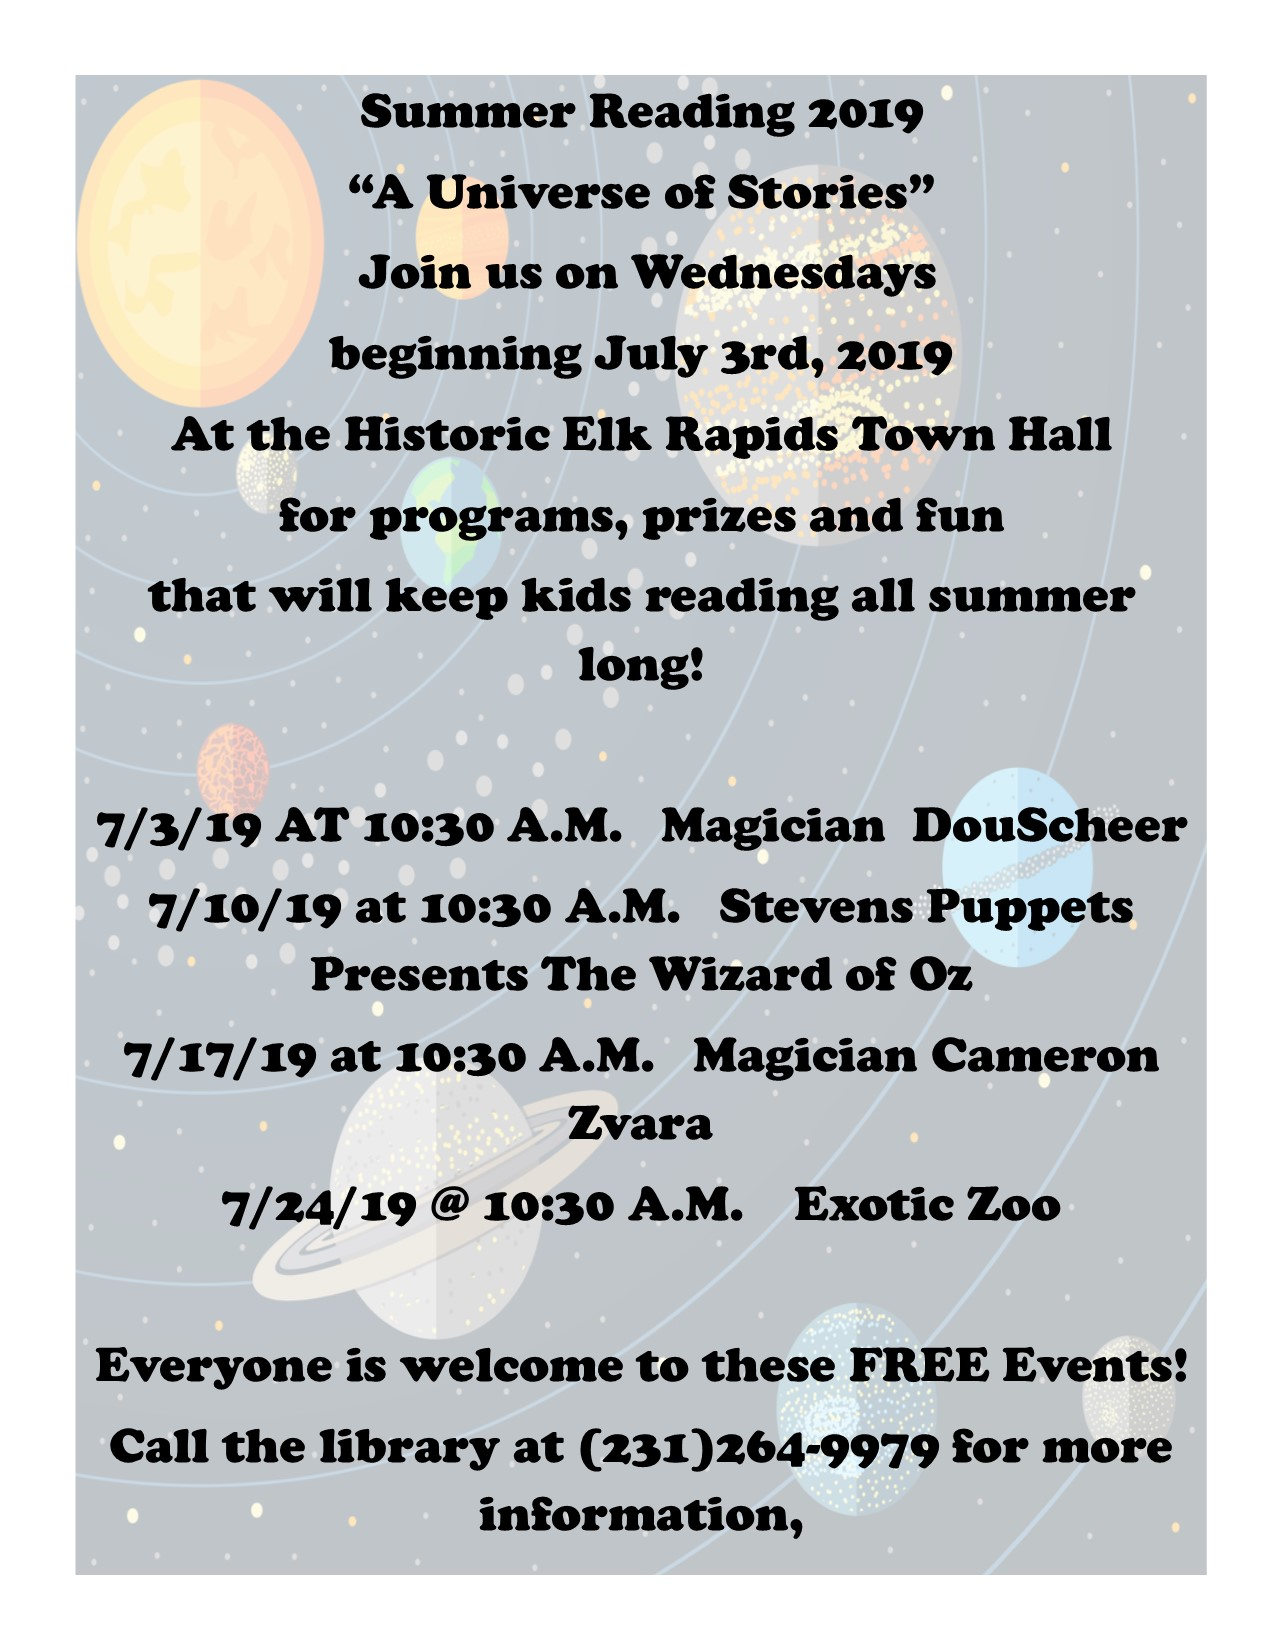 Summer Reading Flyer 2019.jpg